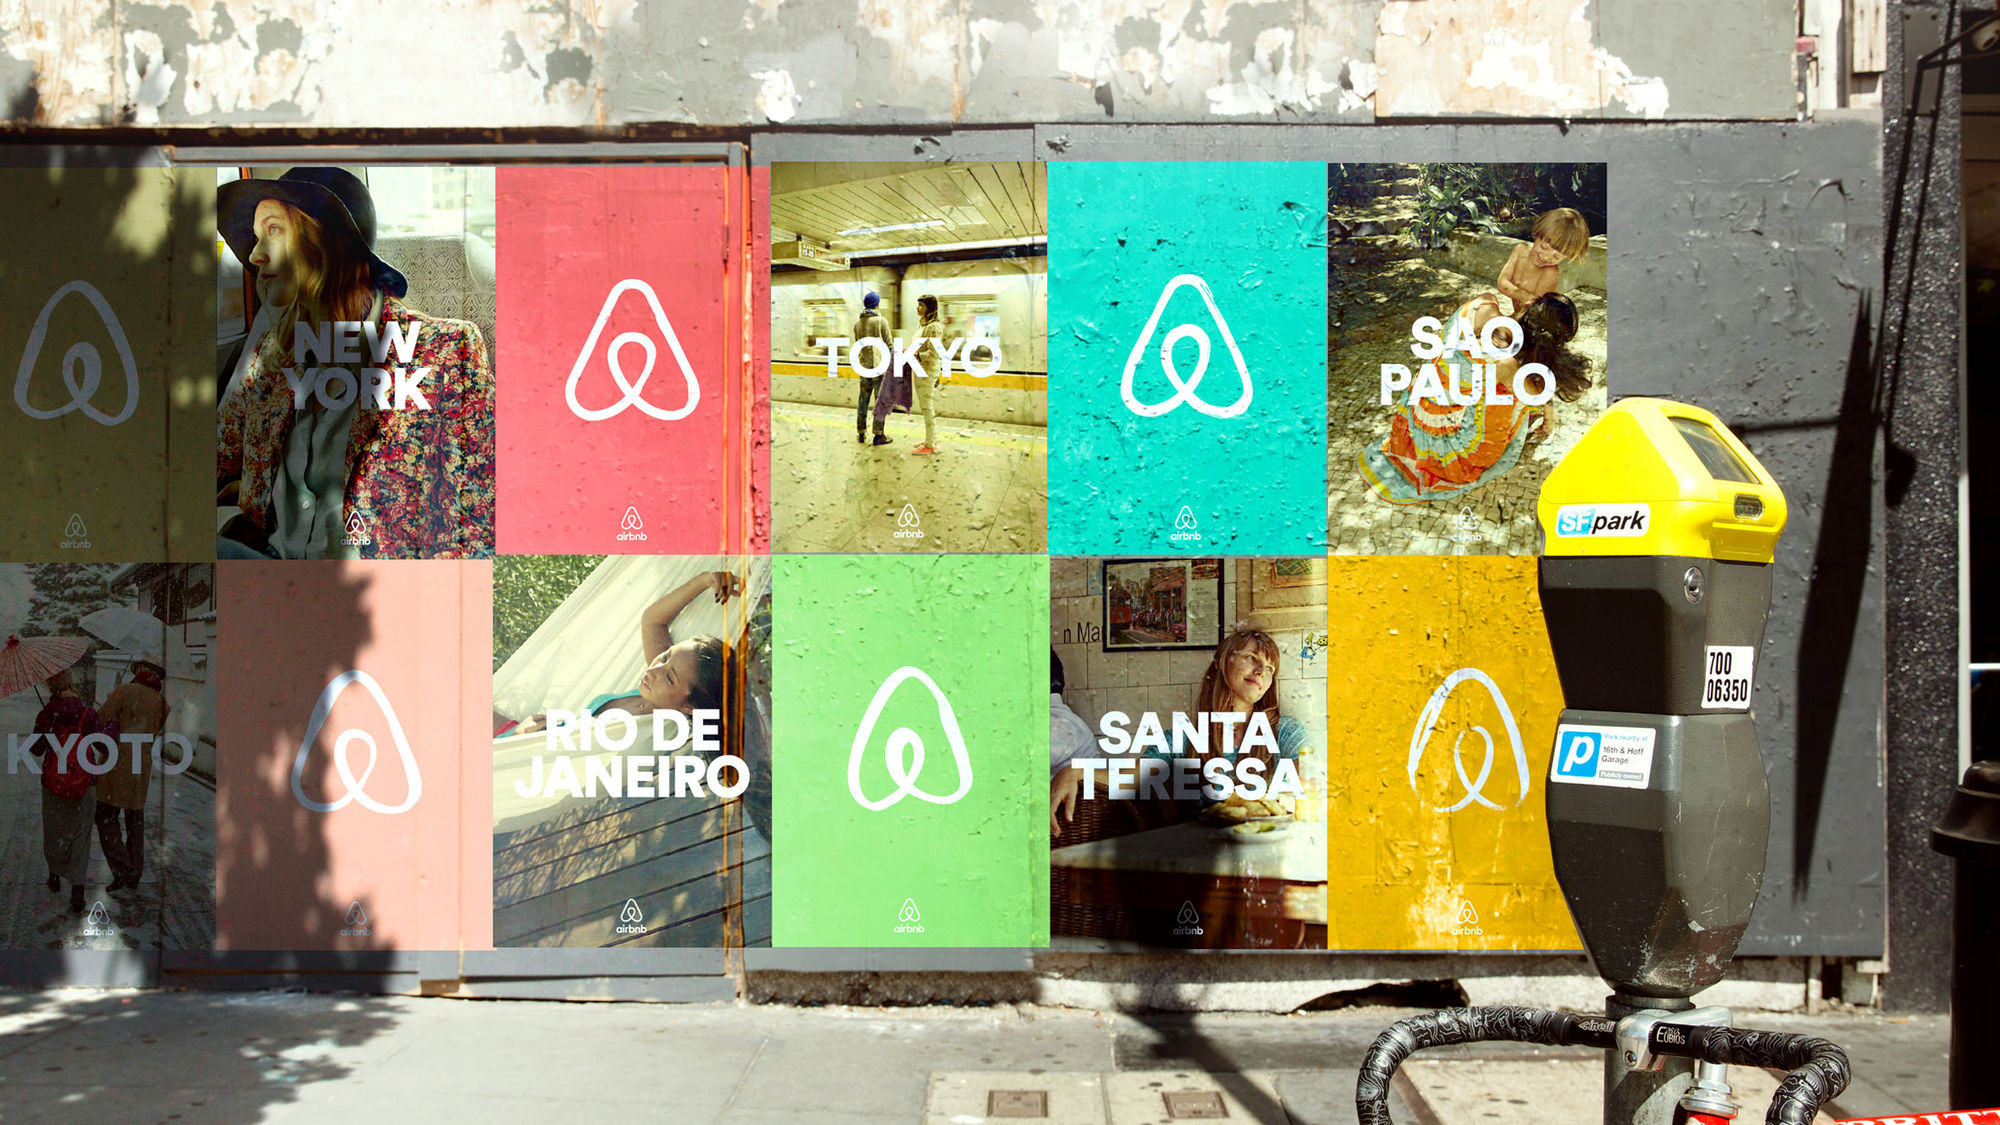 Airbnb . Logoed